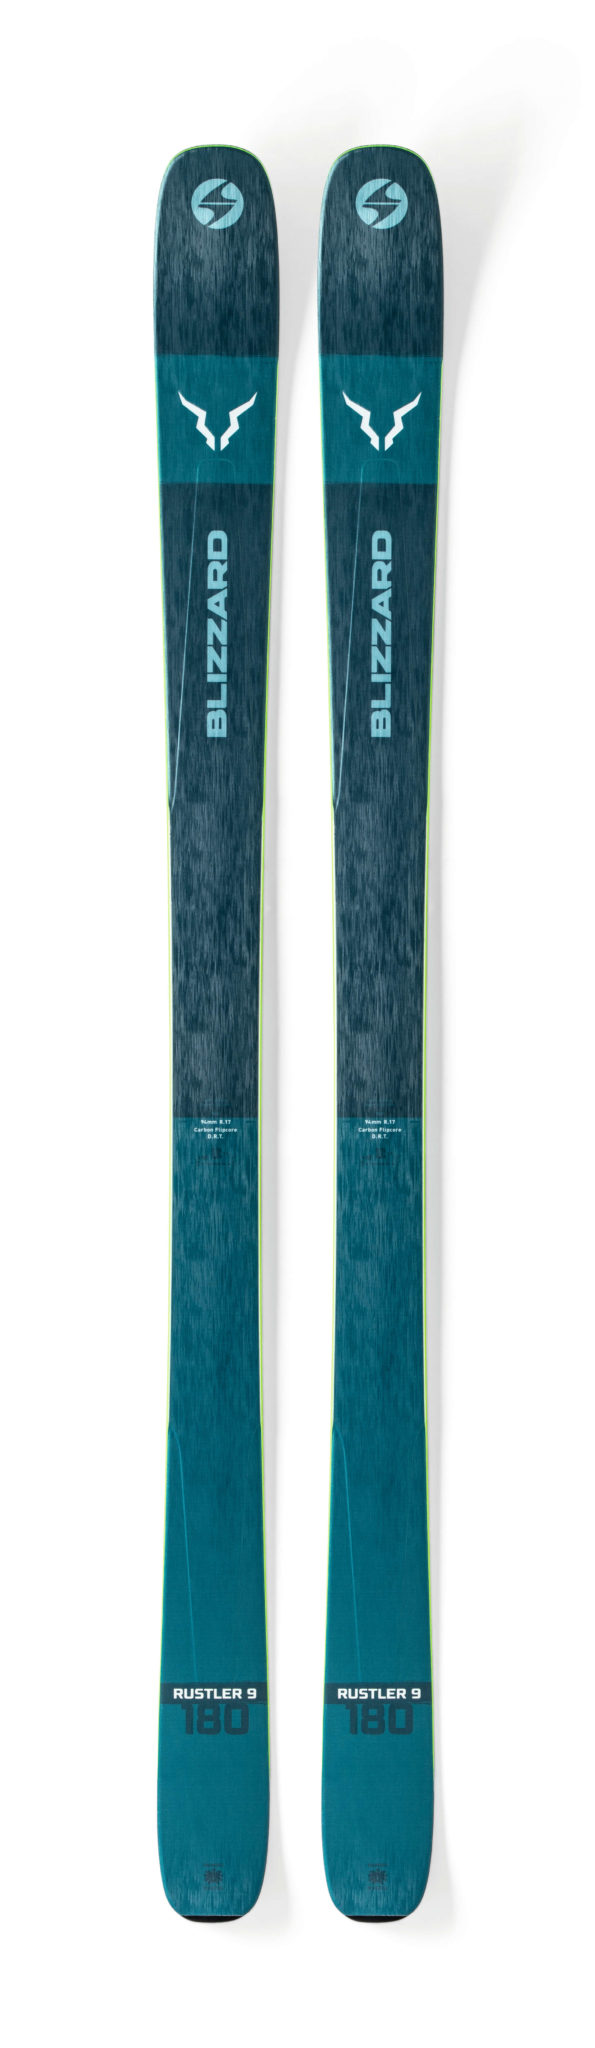 Blizzard Rustler 9 Skis (Flat) 2019-20 at Northern Ski Works